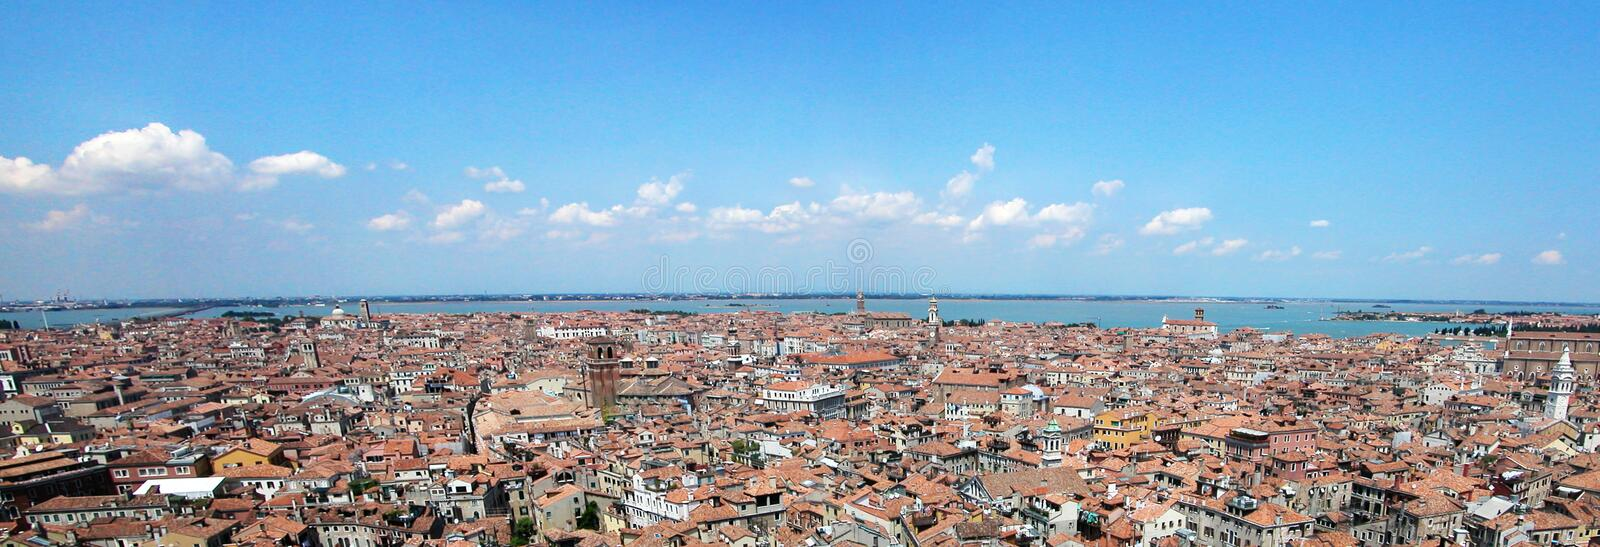 Vue de panorama de Venise images stock